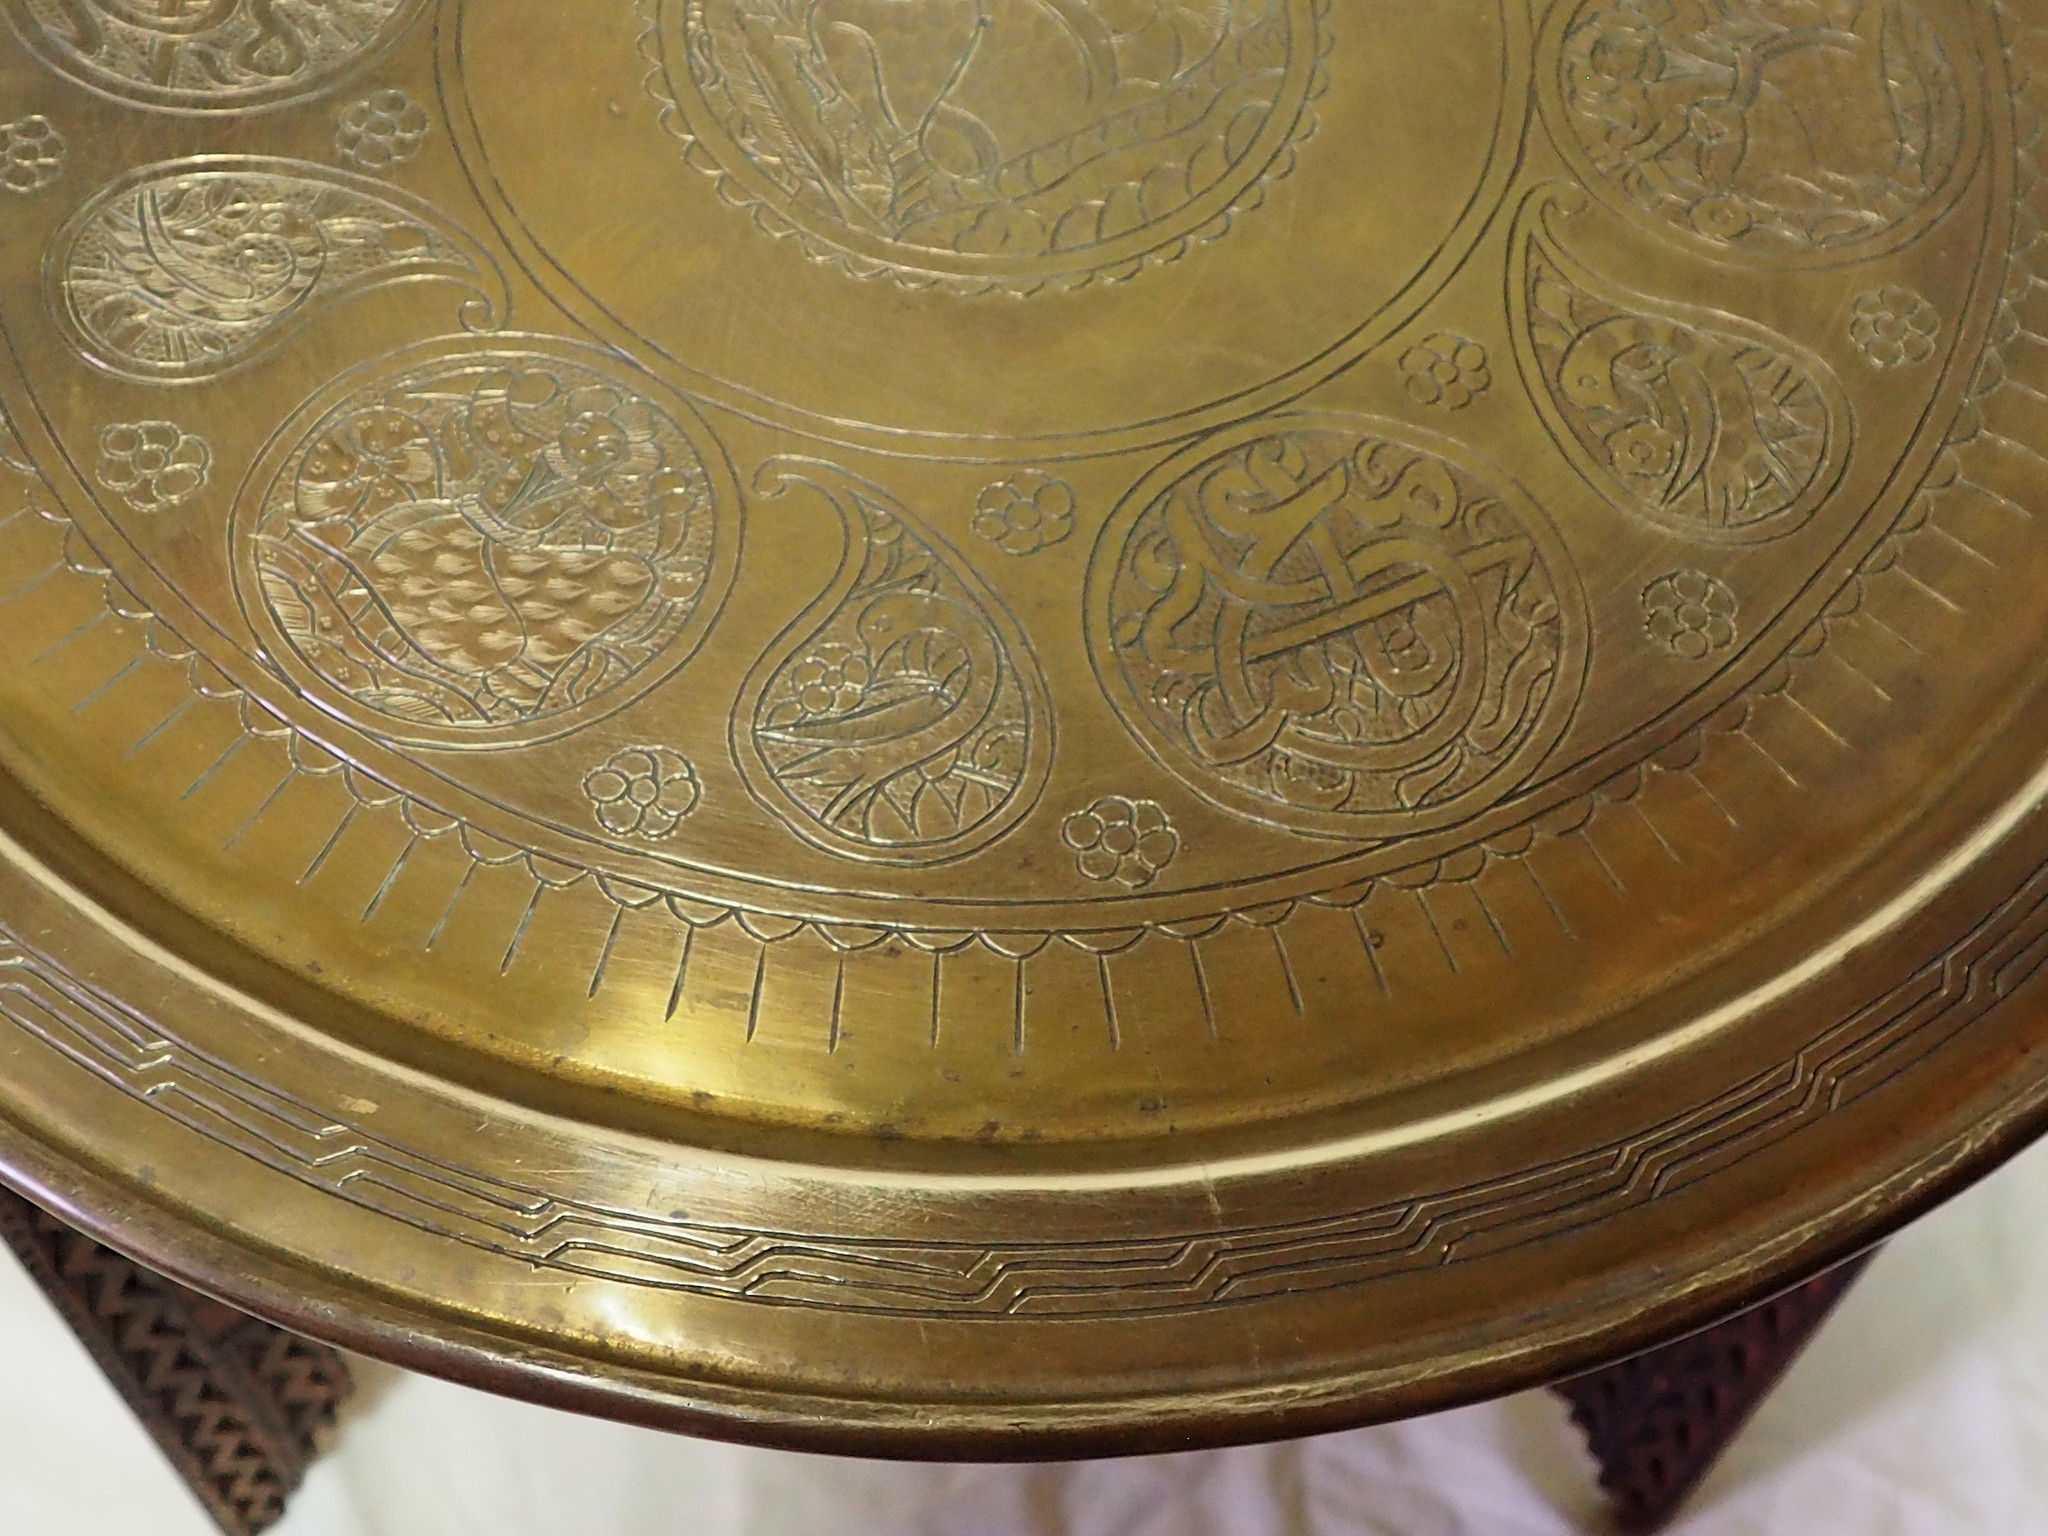 52 cm Antique ottoman orient Islamic  Hammer Engraved Brass table Tea table side table Tray from Afghanistan  No-21/H